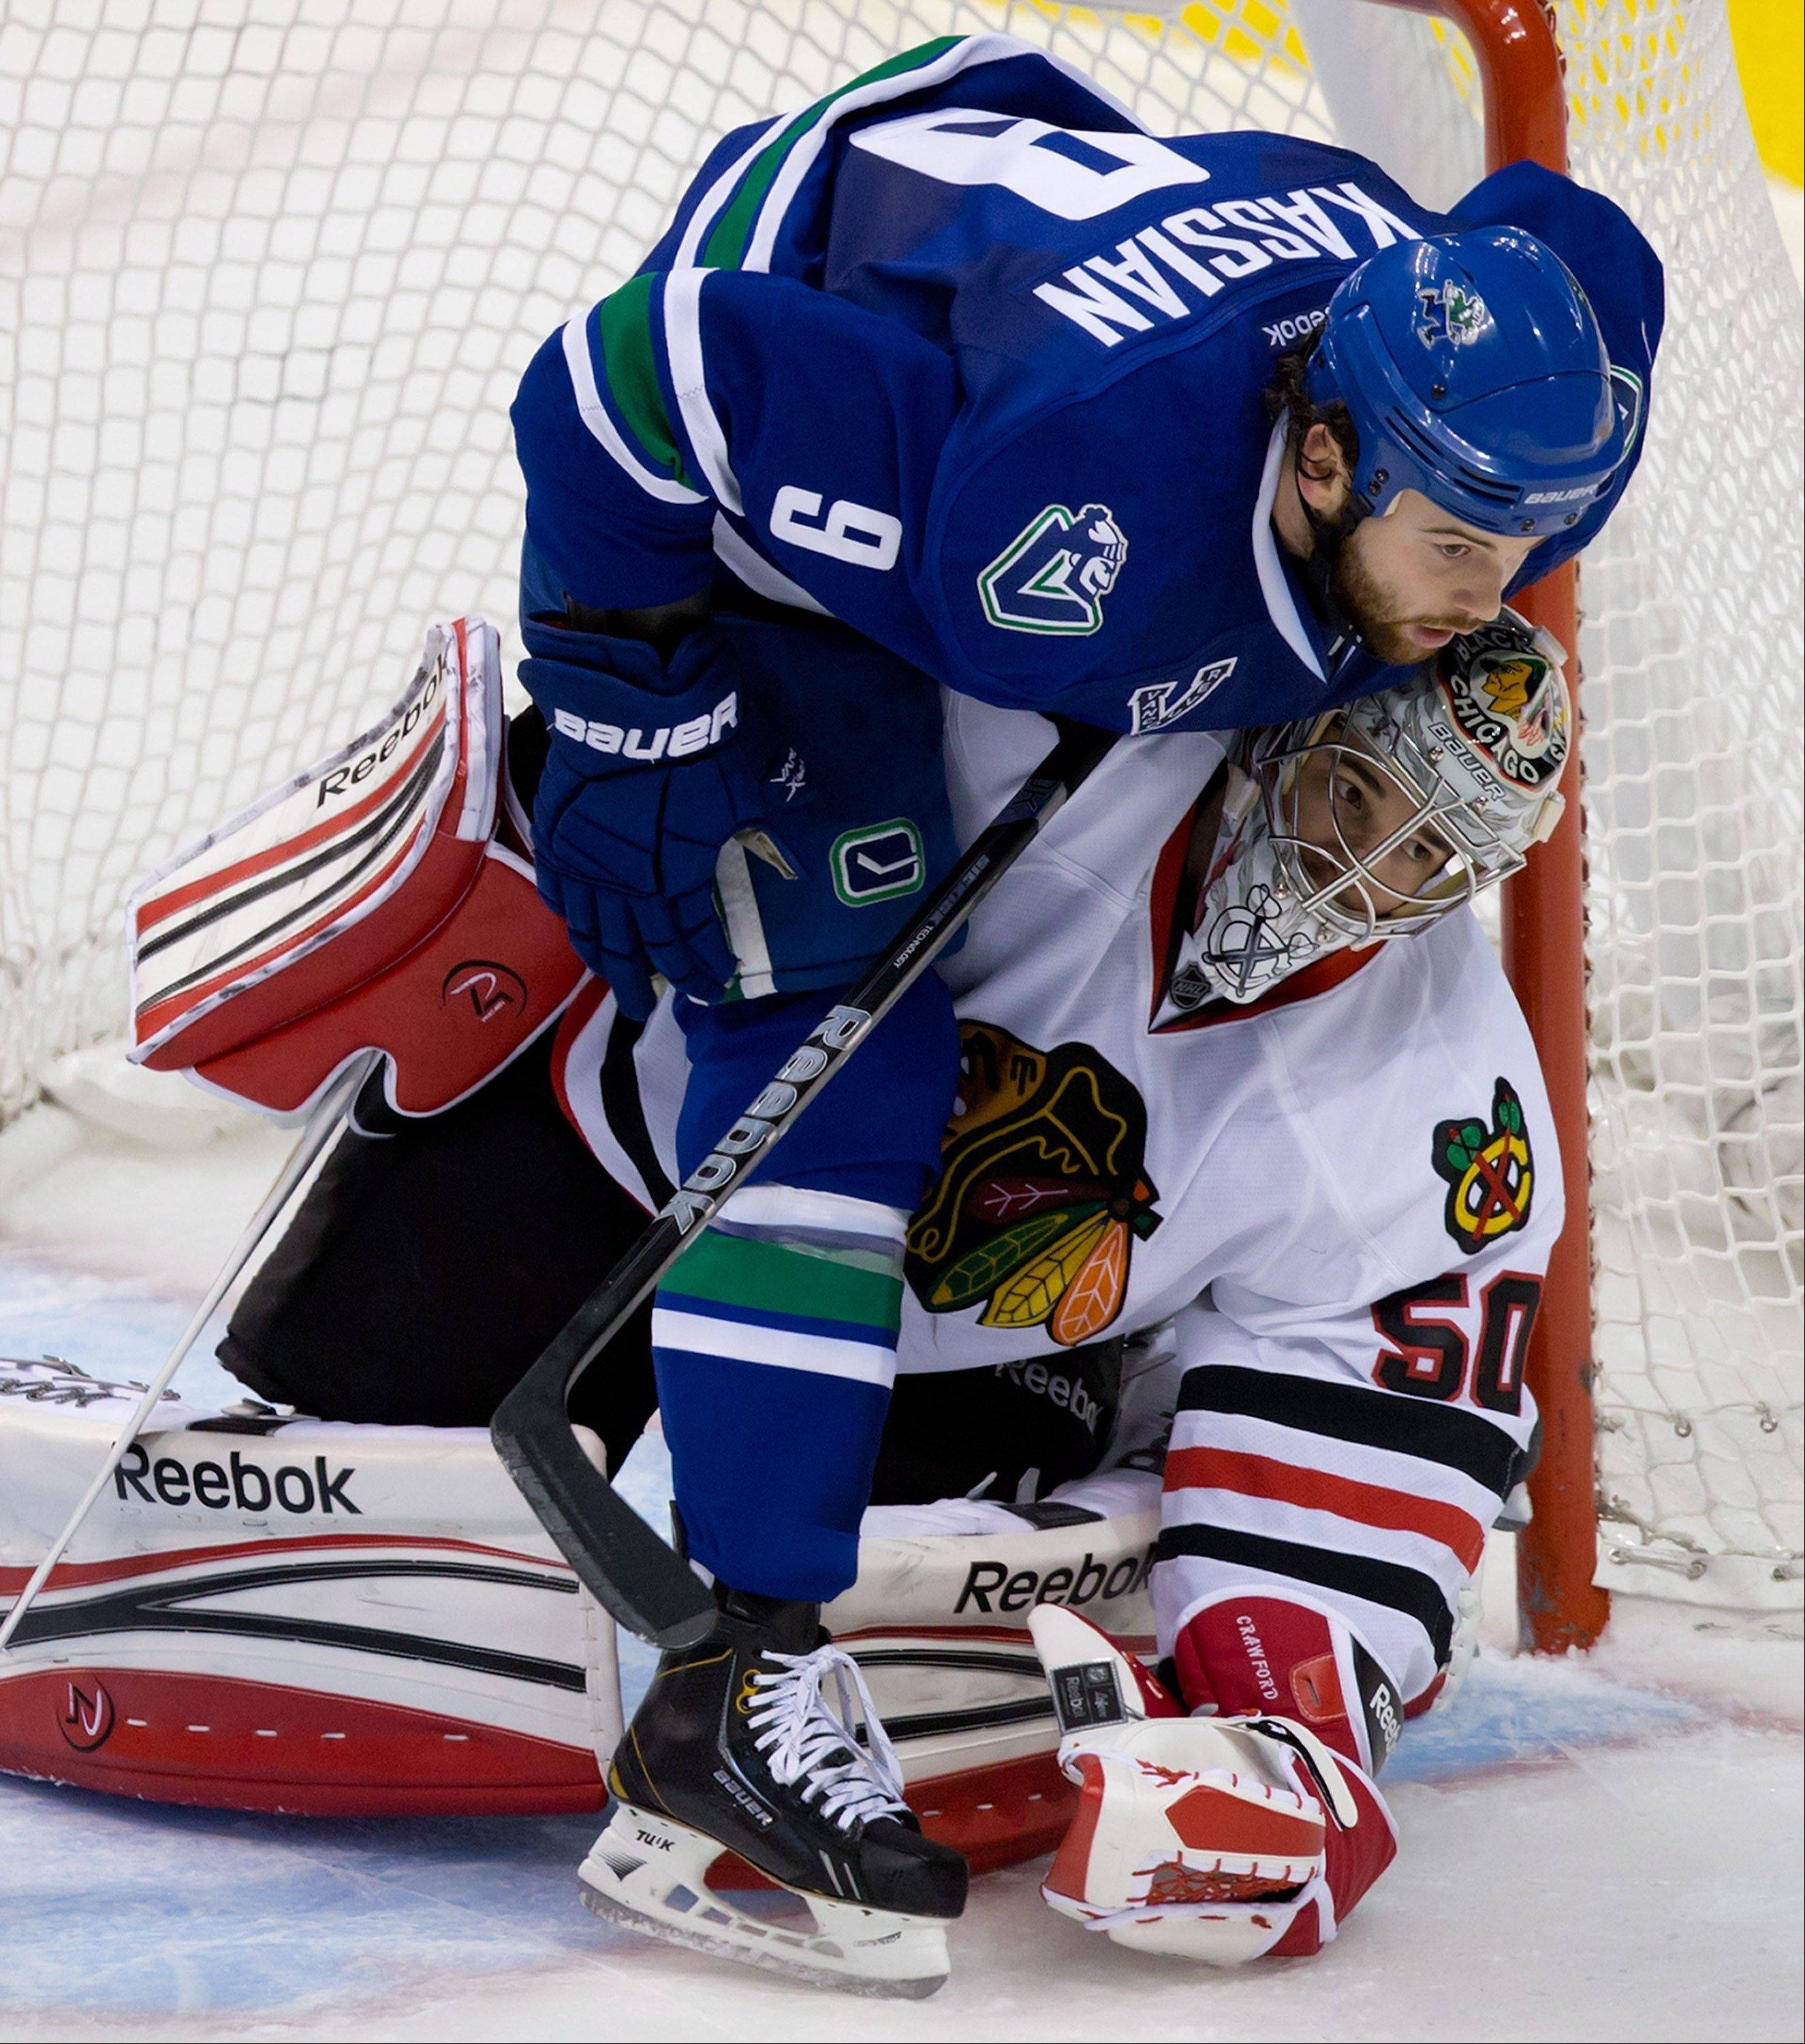 Vancouver Canucks' Zack Kassian, top, falls on Chicago Blackhawks goalie Corey Crawford during the second period of an NHL hockey game in Vancouver, British Columbia, on Friday, Feb. 1, 2013.